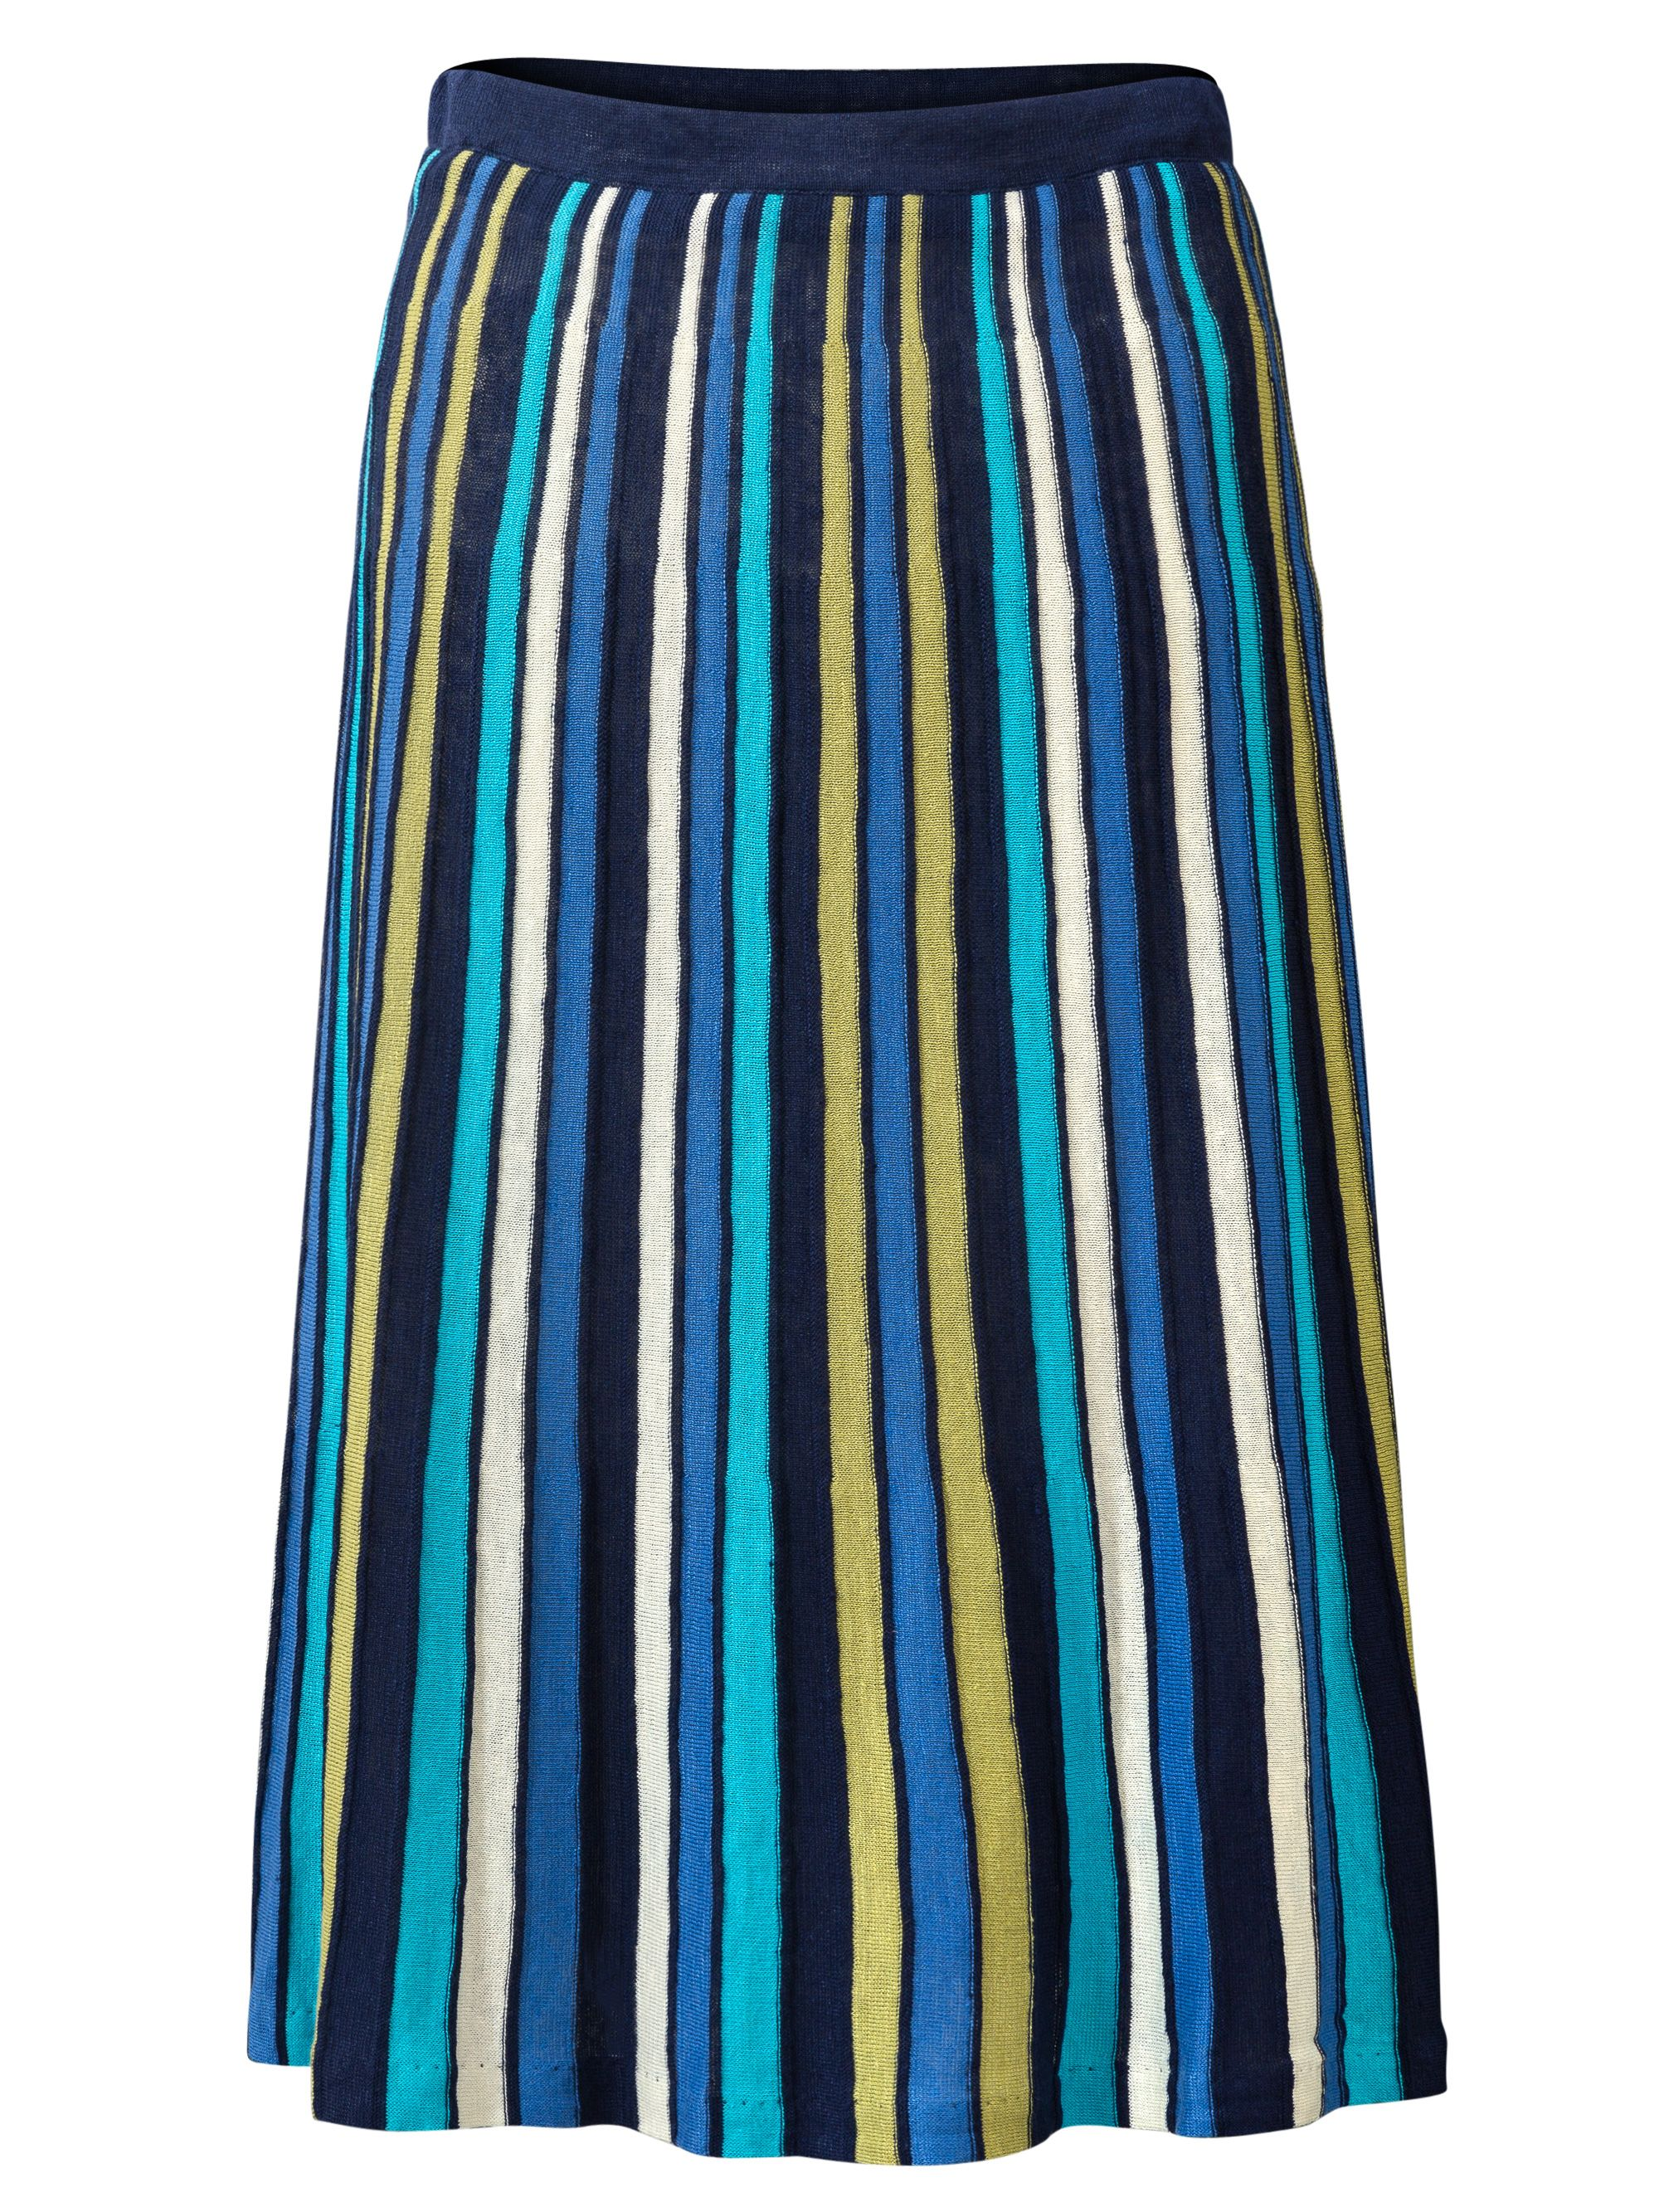 East Sunray Skirt, Multi-Coloured